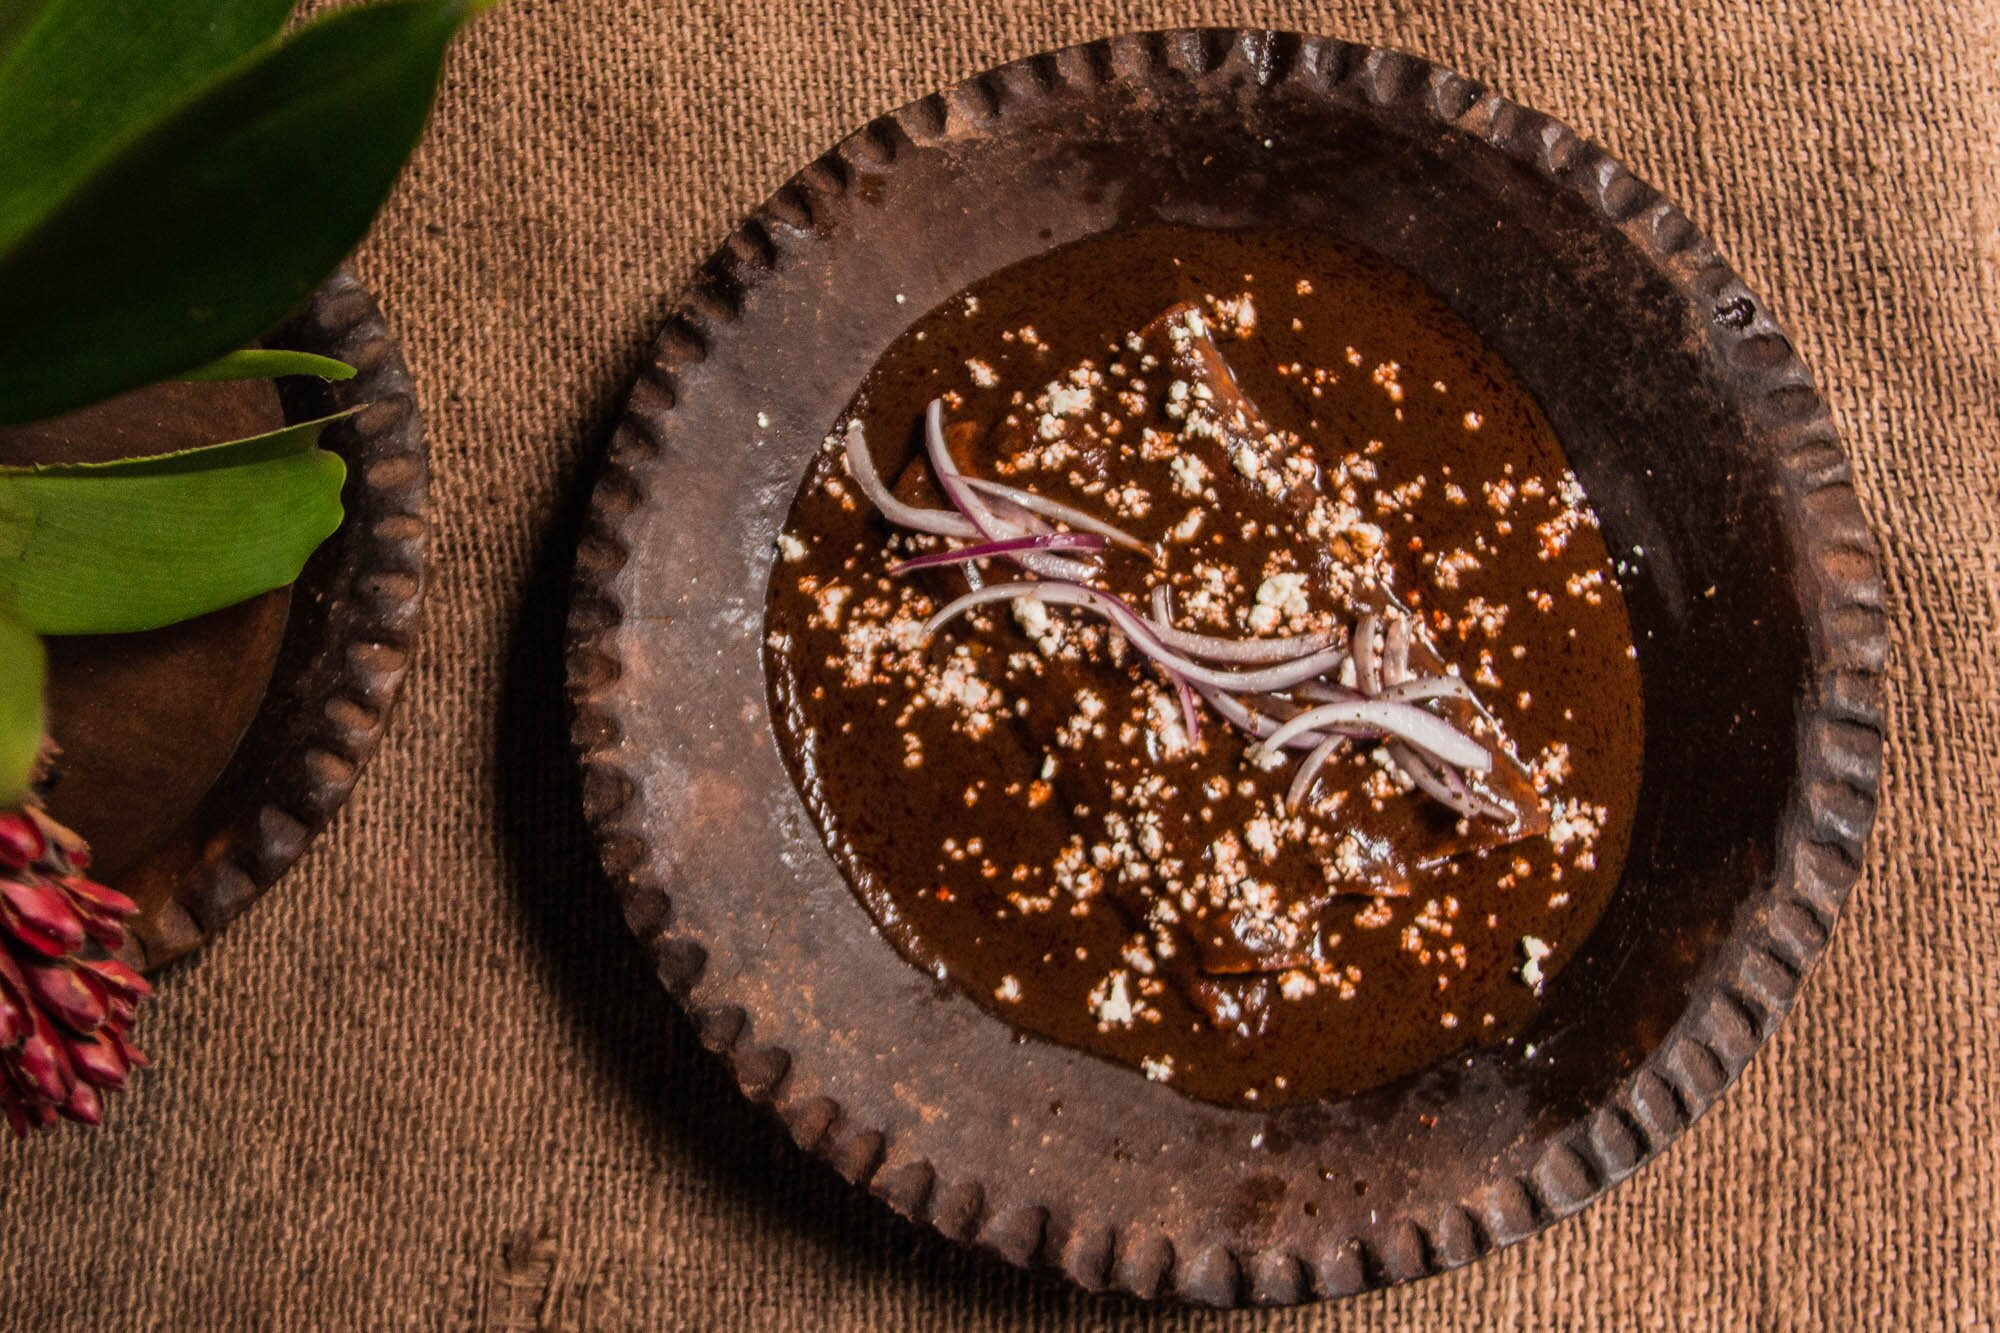 Mole made with housemade chocolate at Cocina Chontal